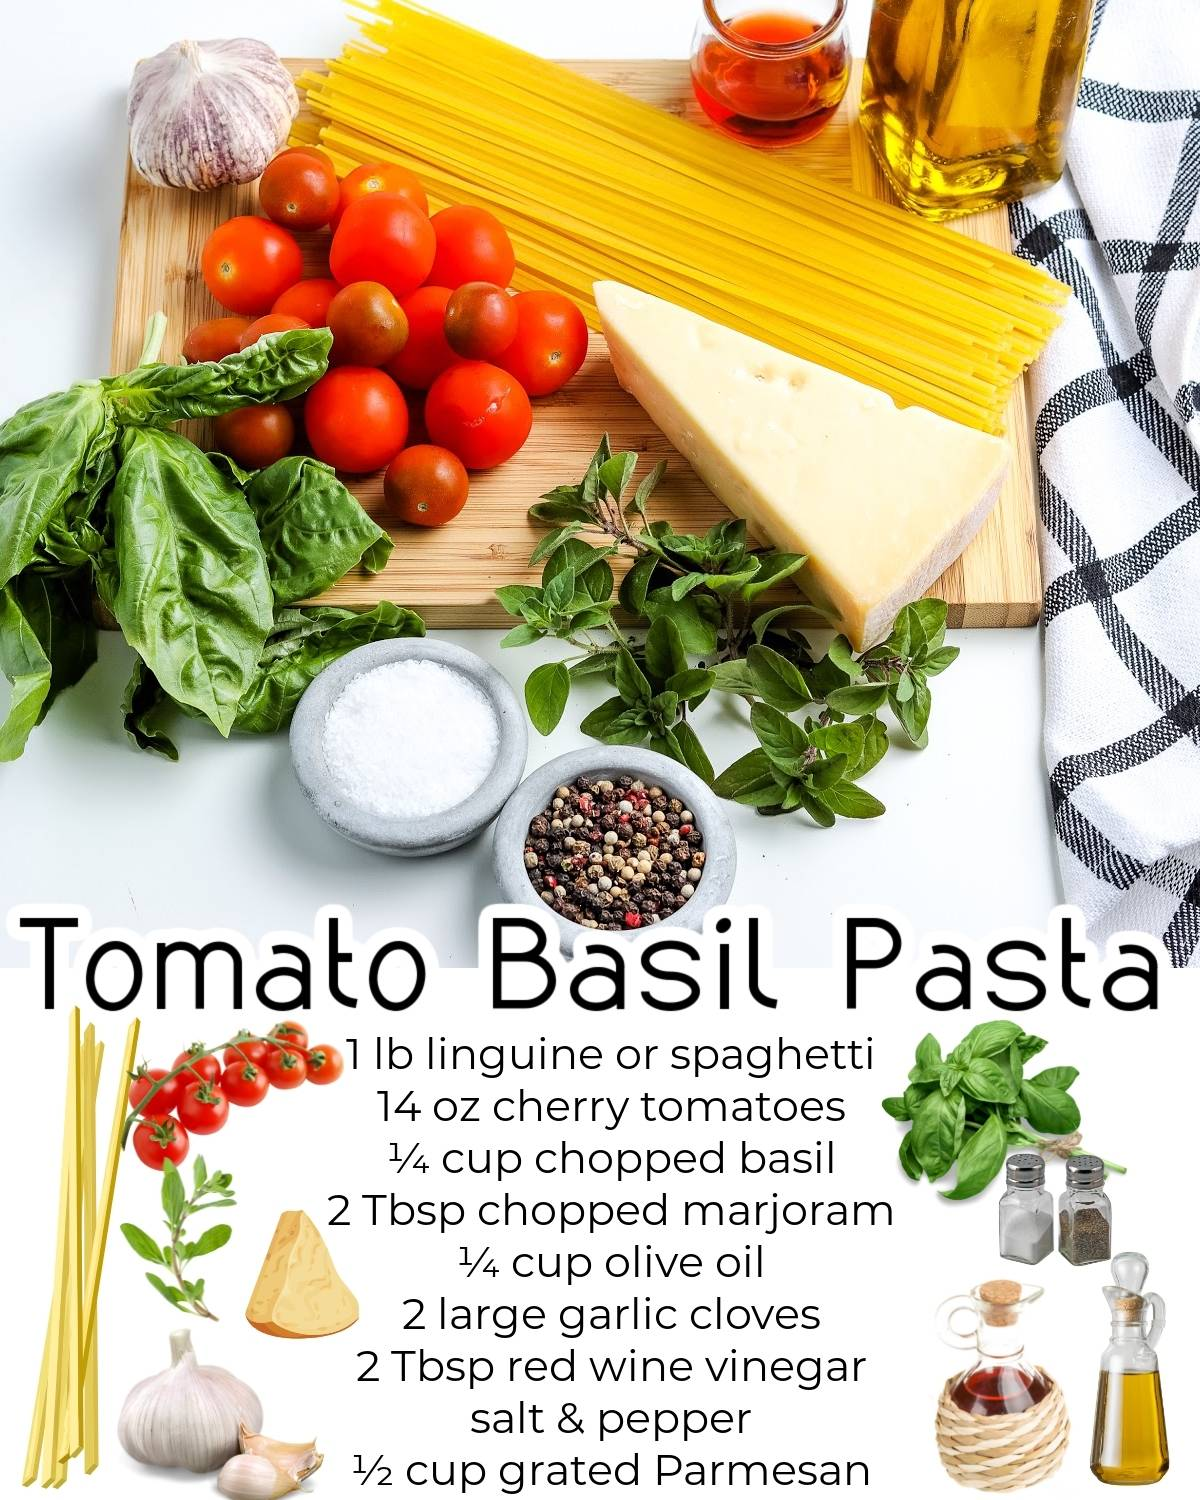 All of the ingredients needed to make this Tomato Basil Pasta recipe.